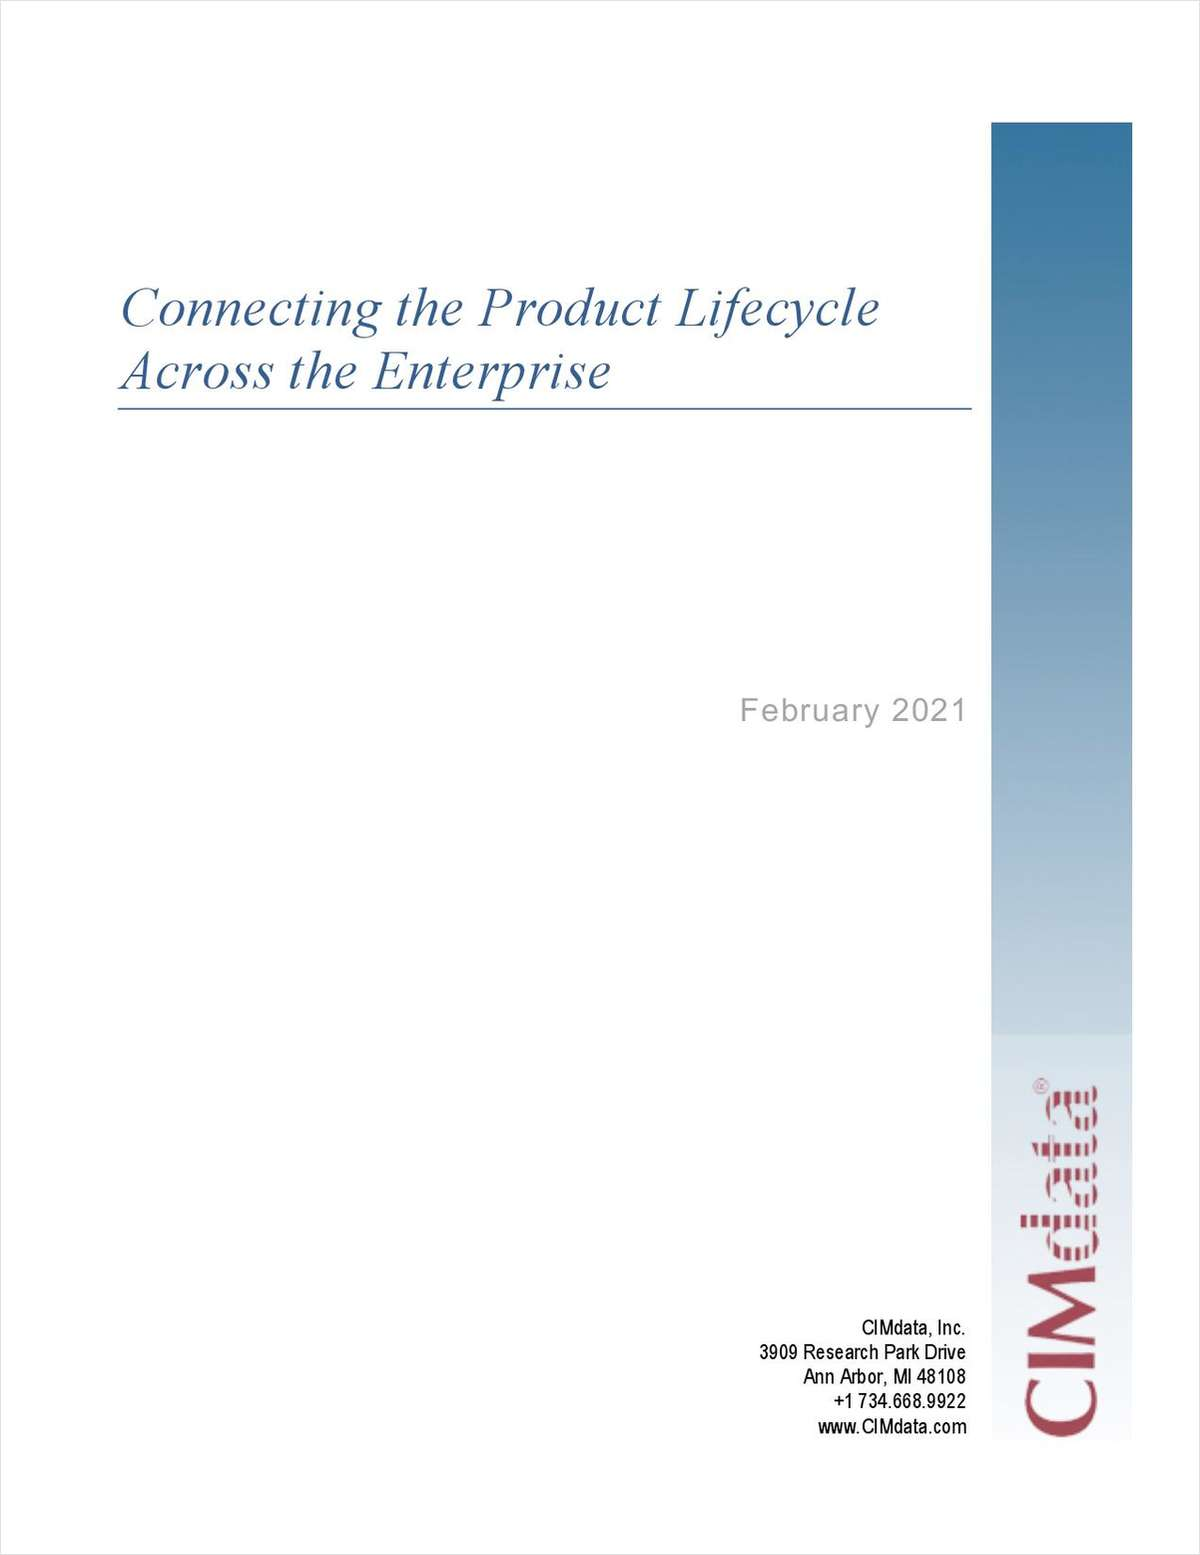 Connecting the Product Lifecycle Across the Enterprise